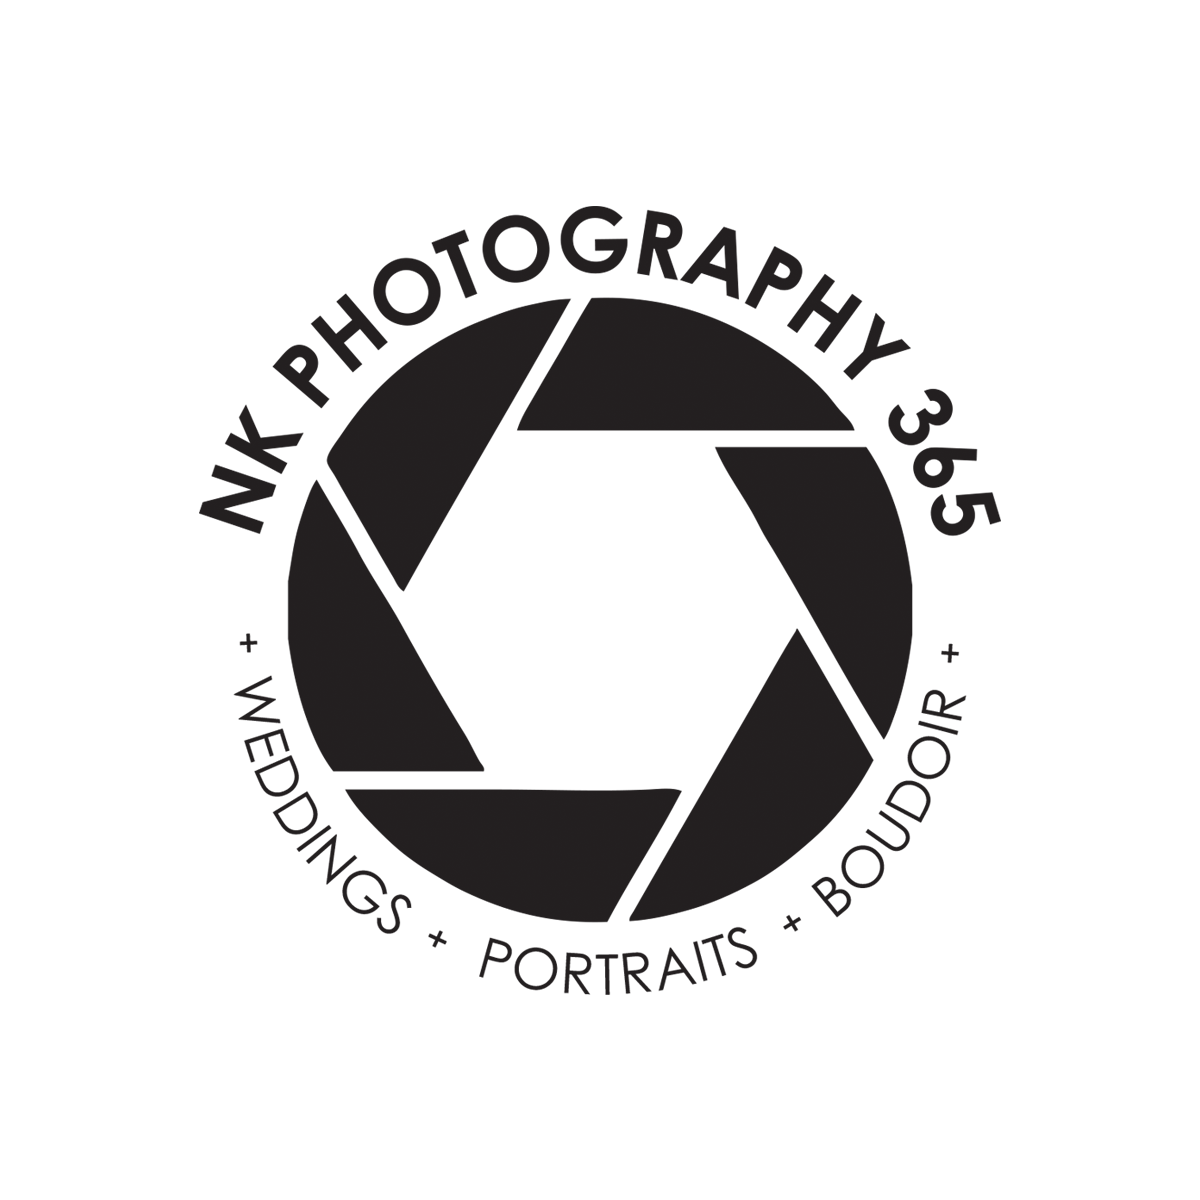 NK Photography 365